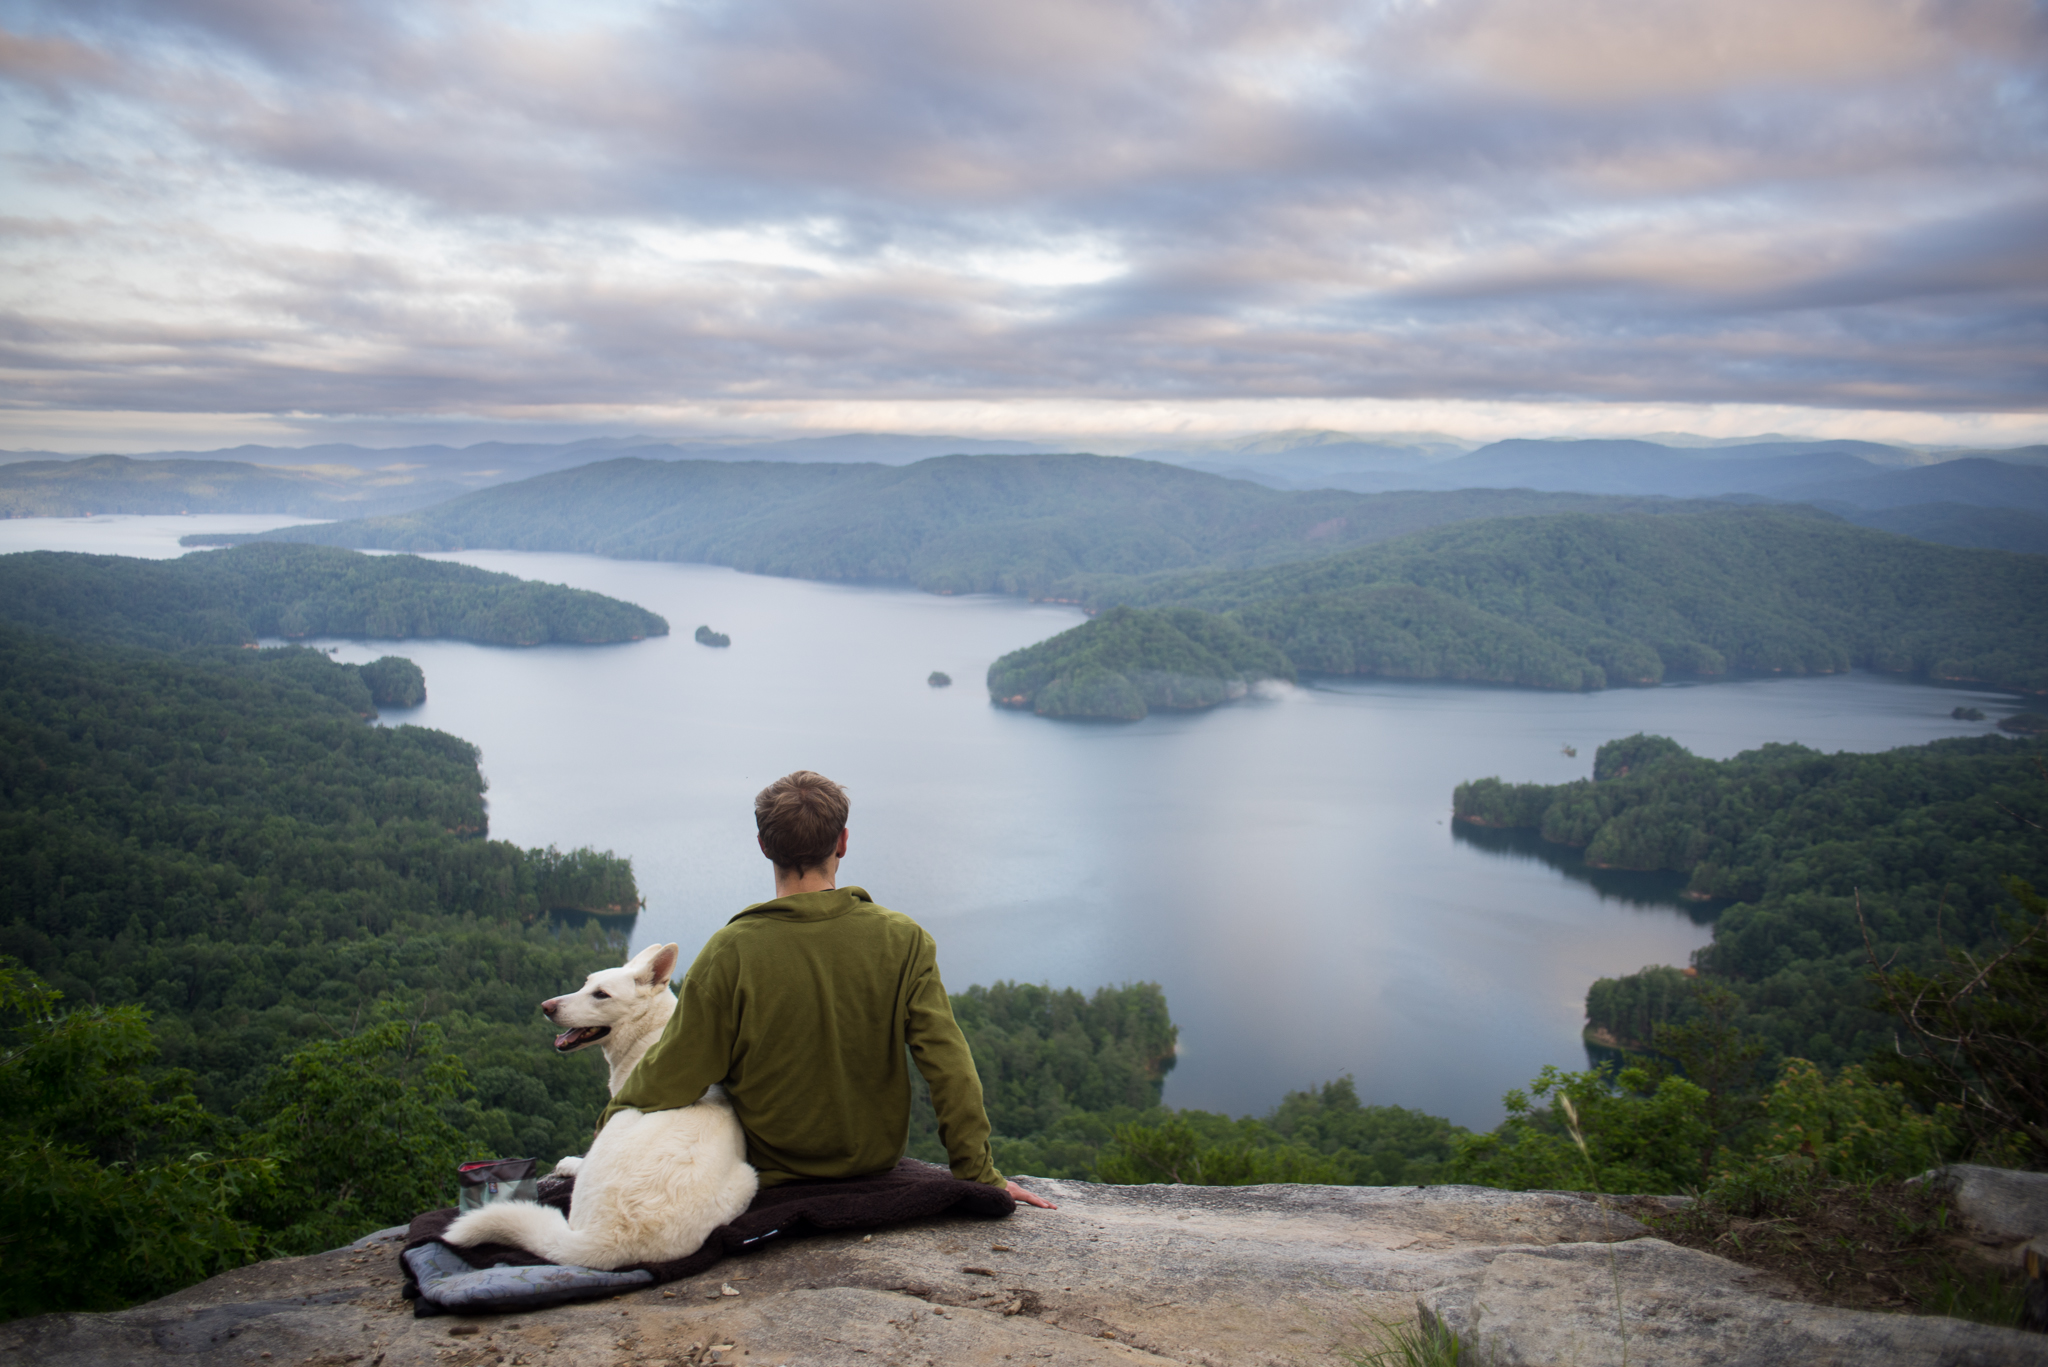 Kurgo, hiking with pets, pet safety, fall